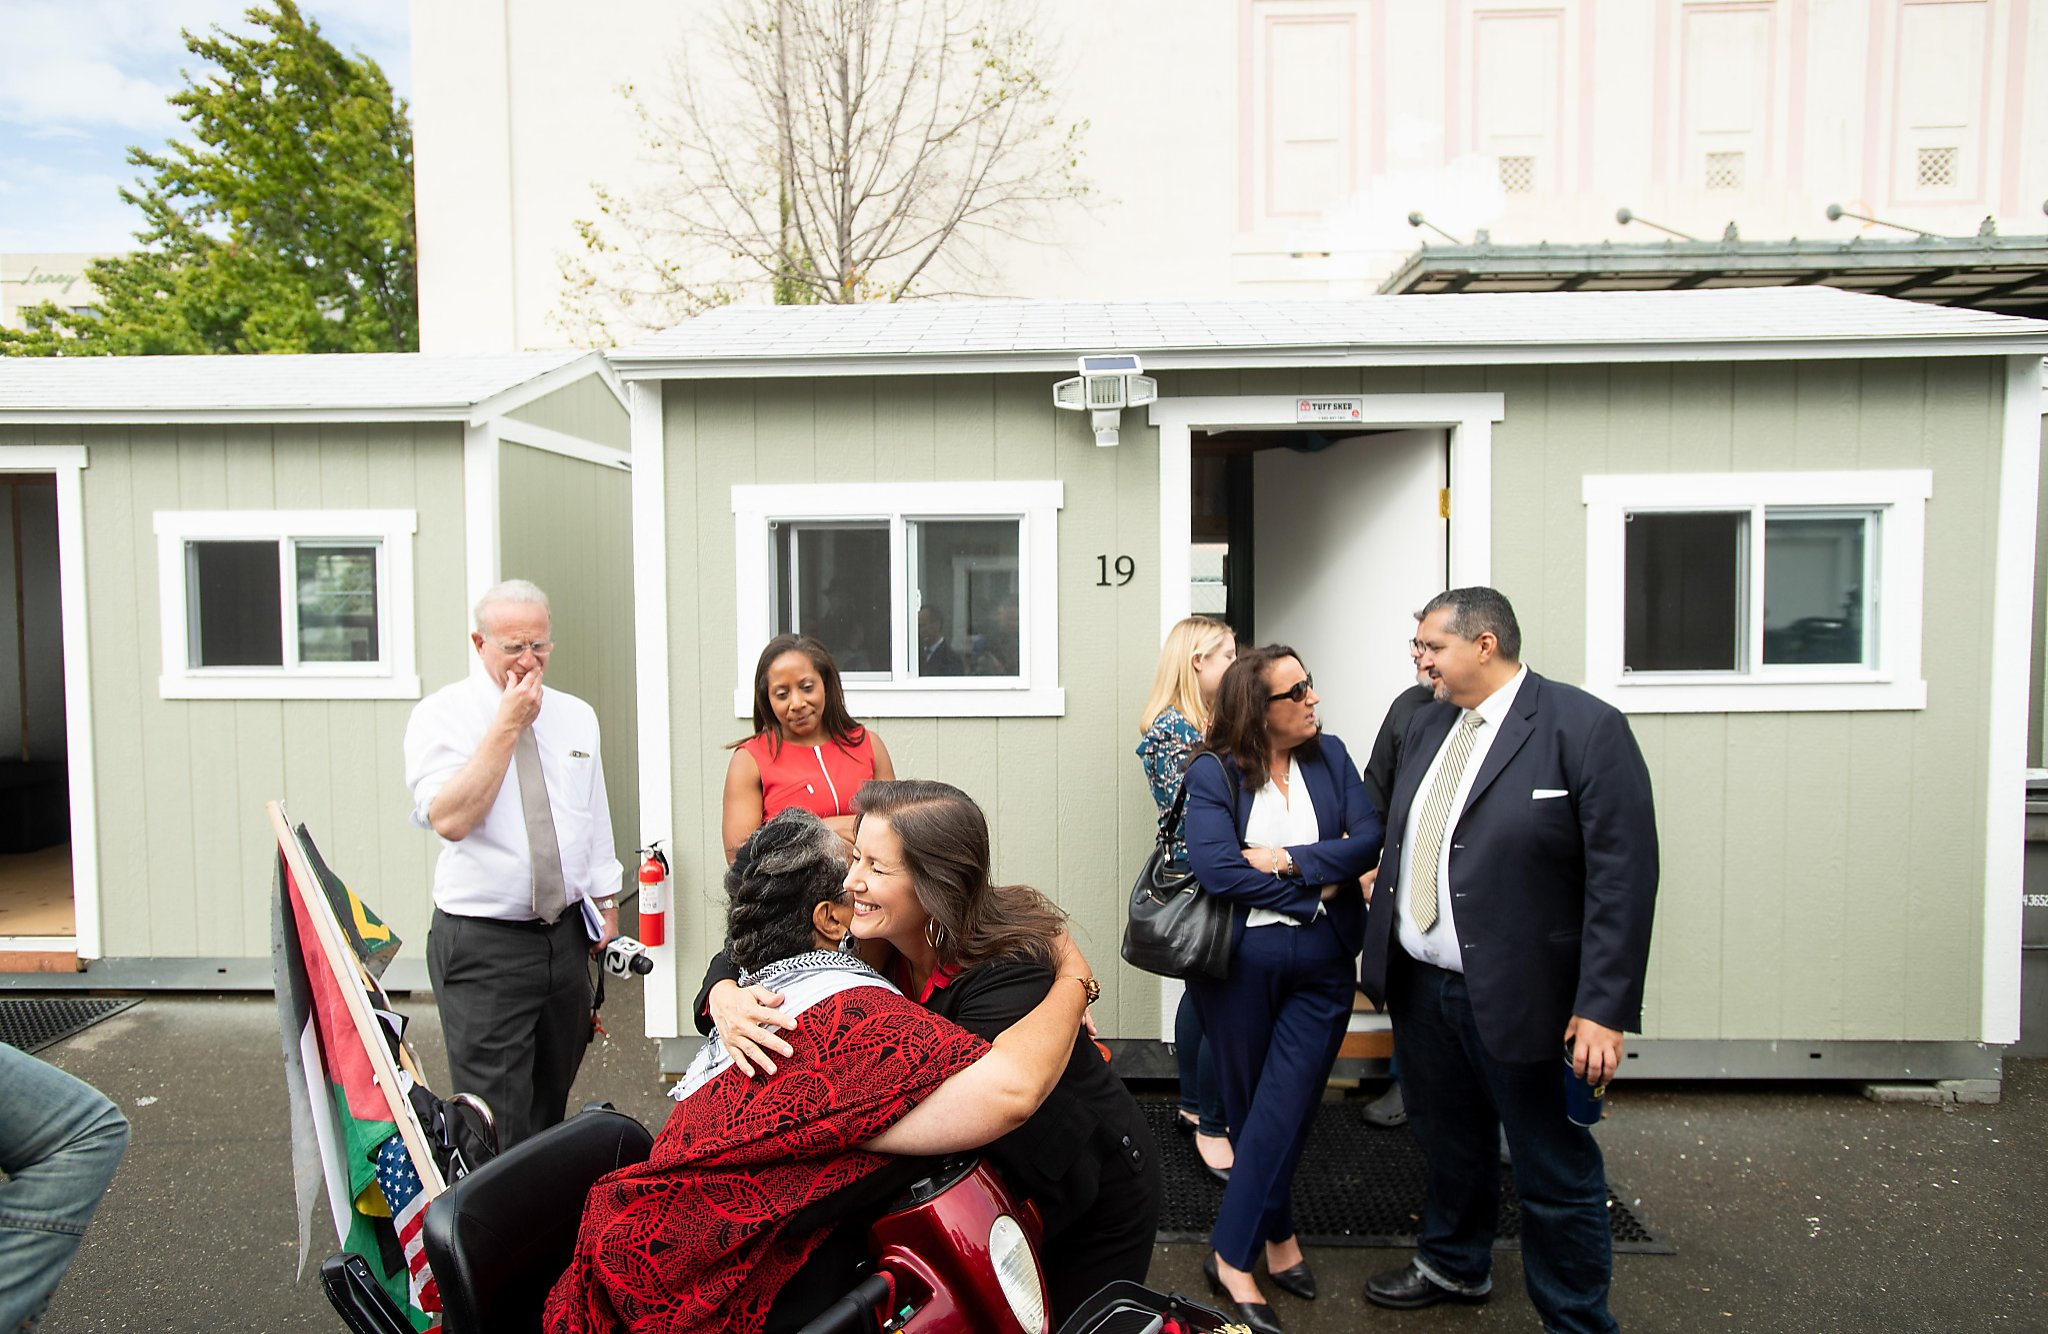 Oakland To Clear Lake Merritt Homeless Camps Open New Tuff Shed Units Sfchronicle Com